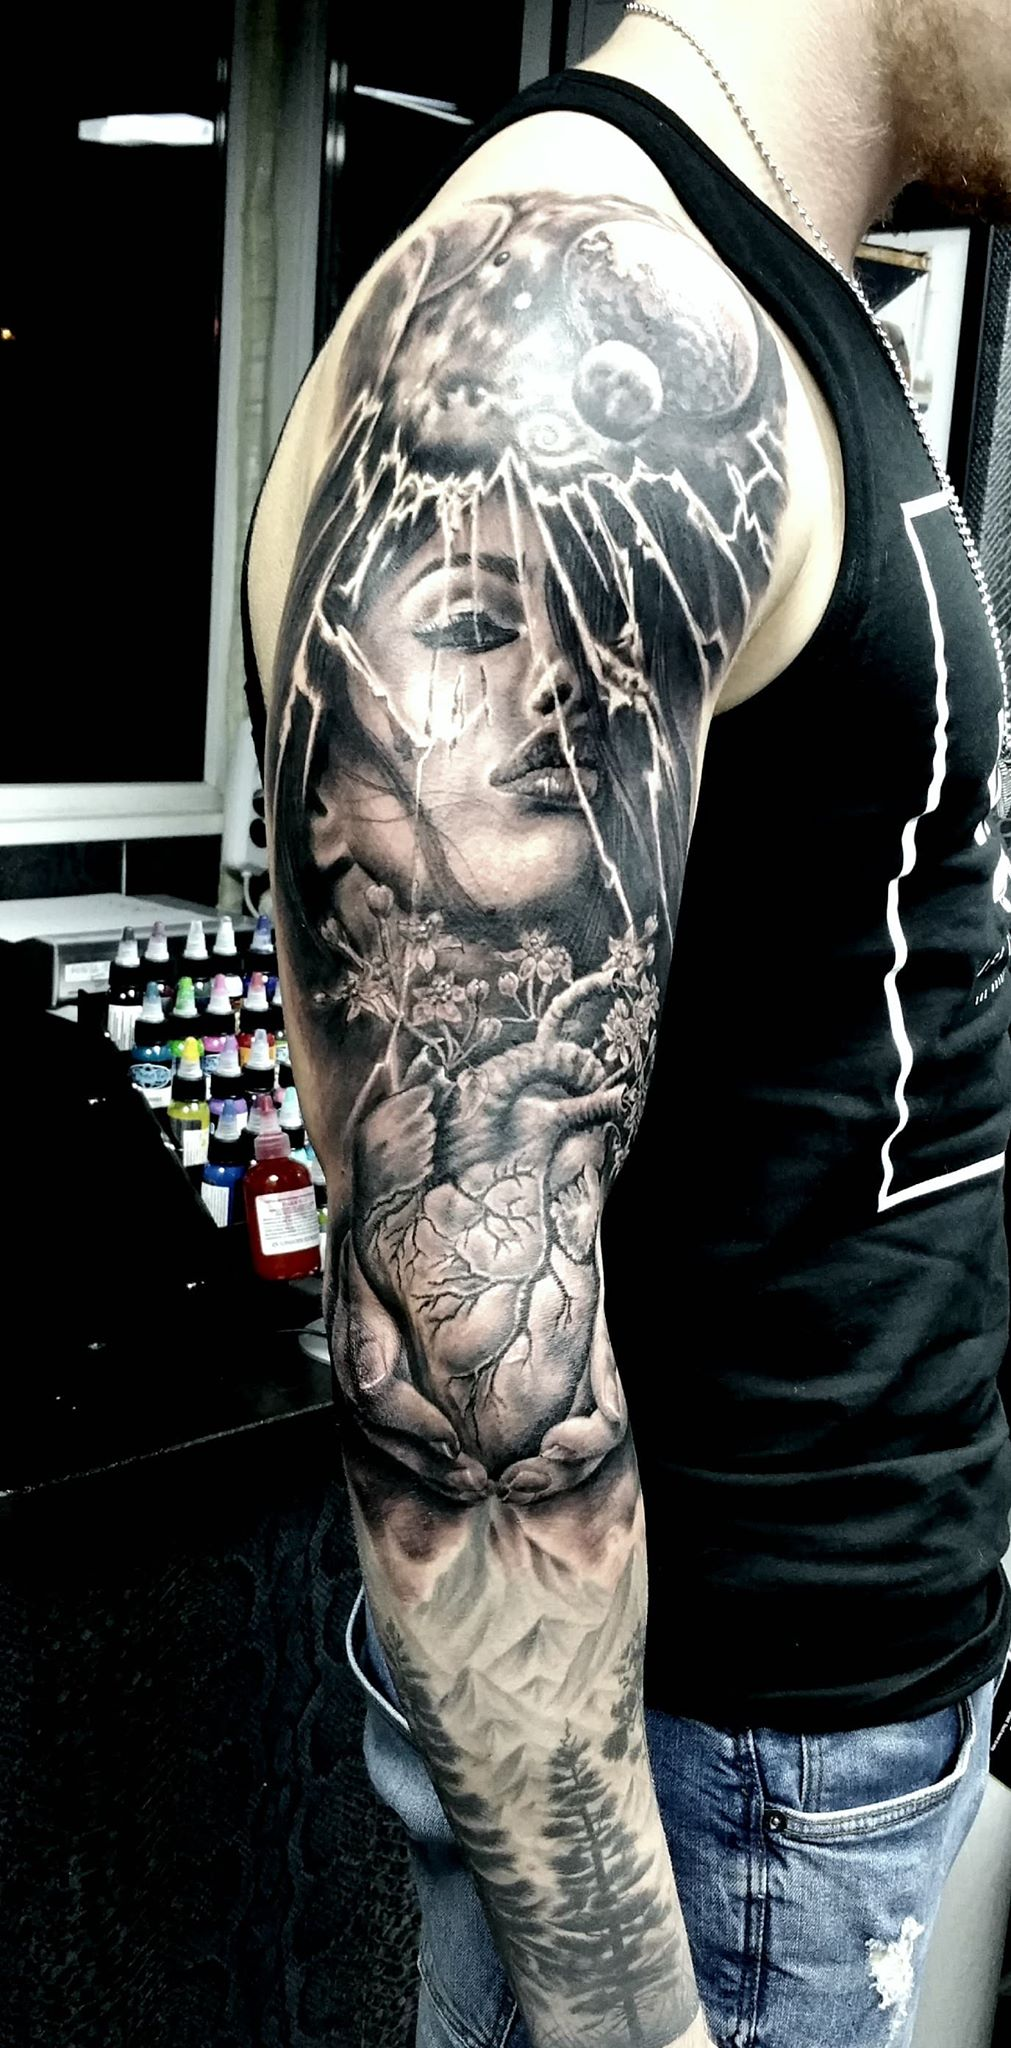 Next Level Tattoos Costi - Moshu Moku